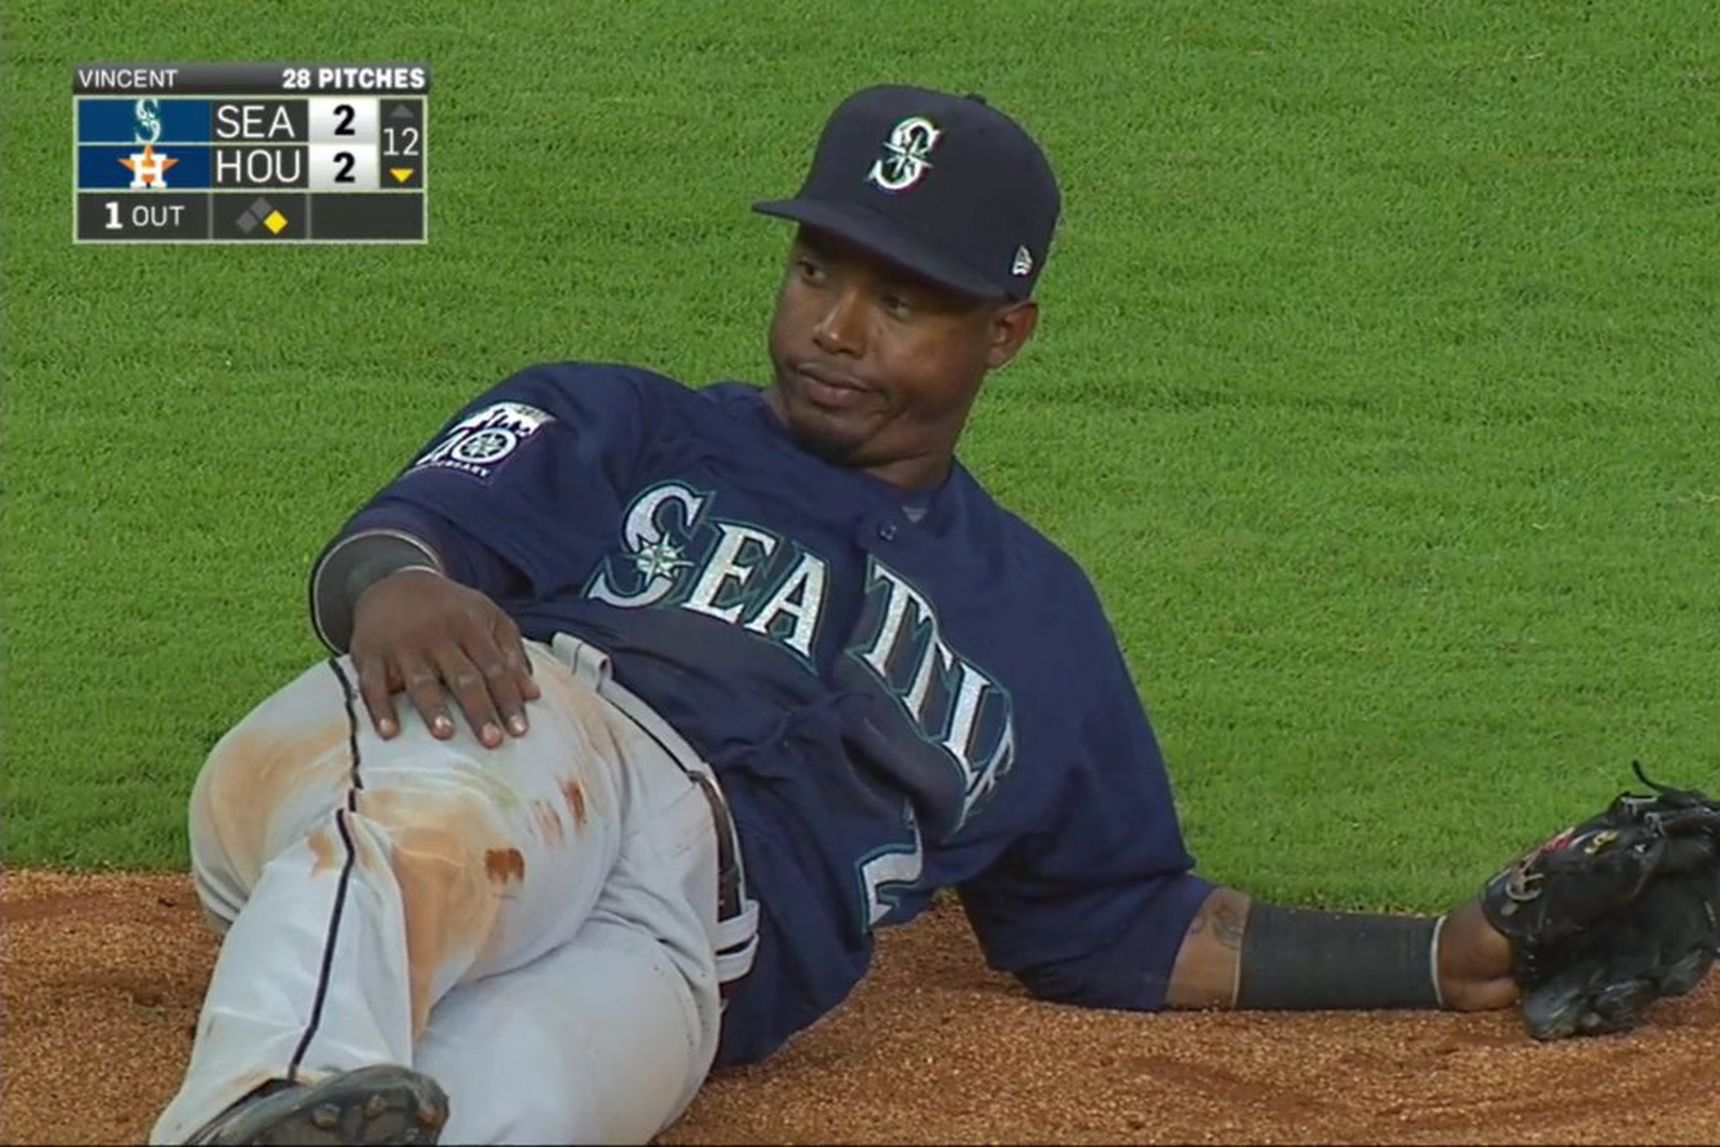 There is literally no better visual representation of April 2017 than this screencap. Hopefully it does not become the best representation of the whole season, but time will tell. Until then, here is unimpressed Jean Segura in the 12th inning of a baseball game.